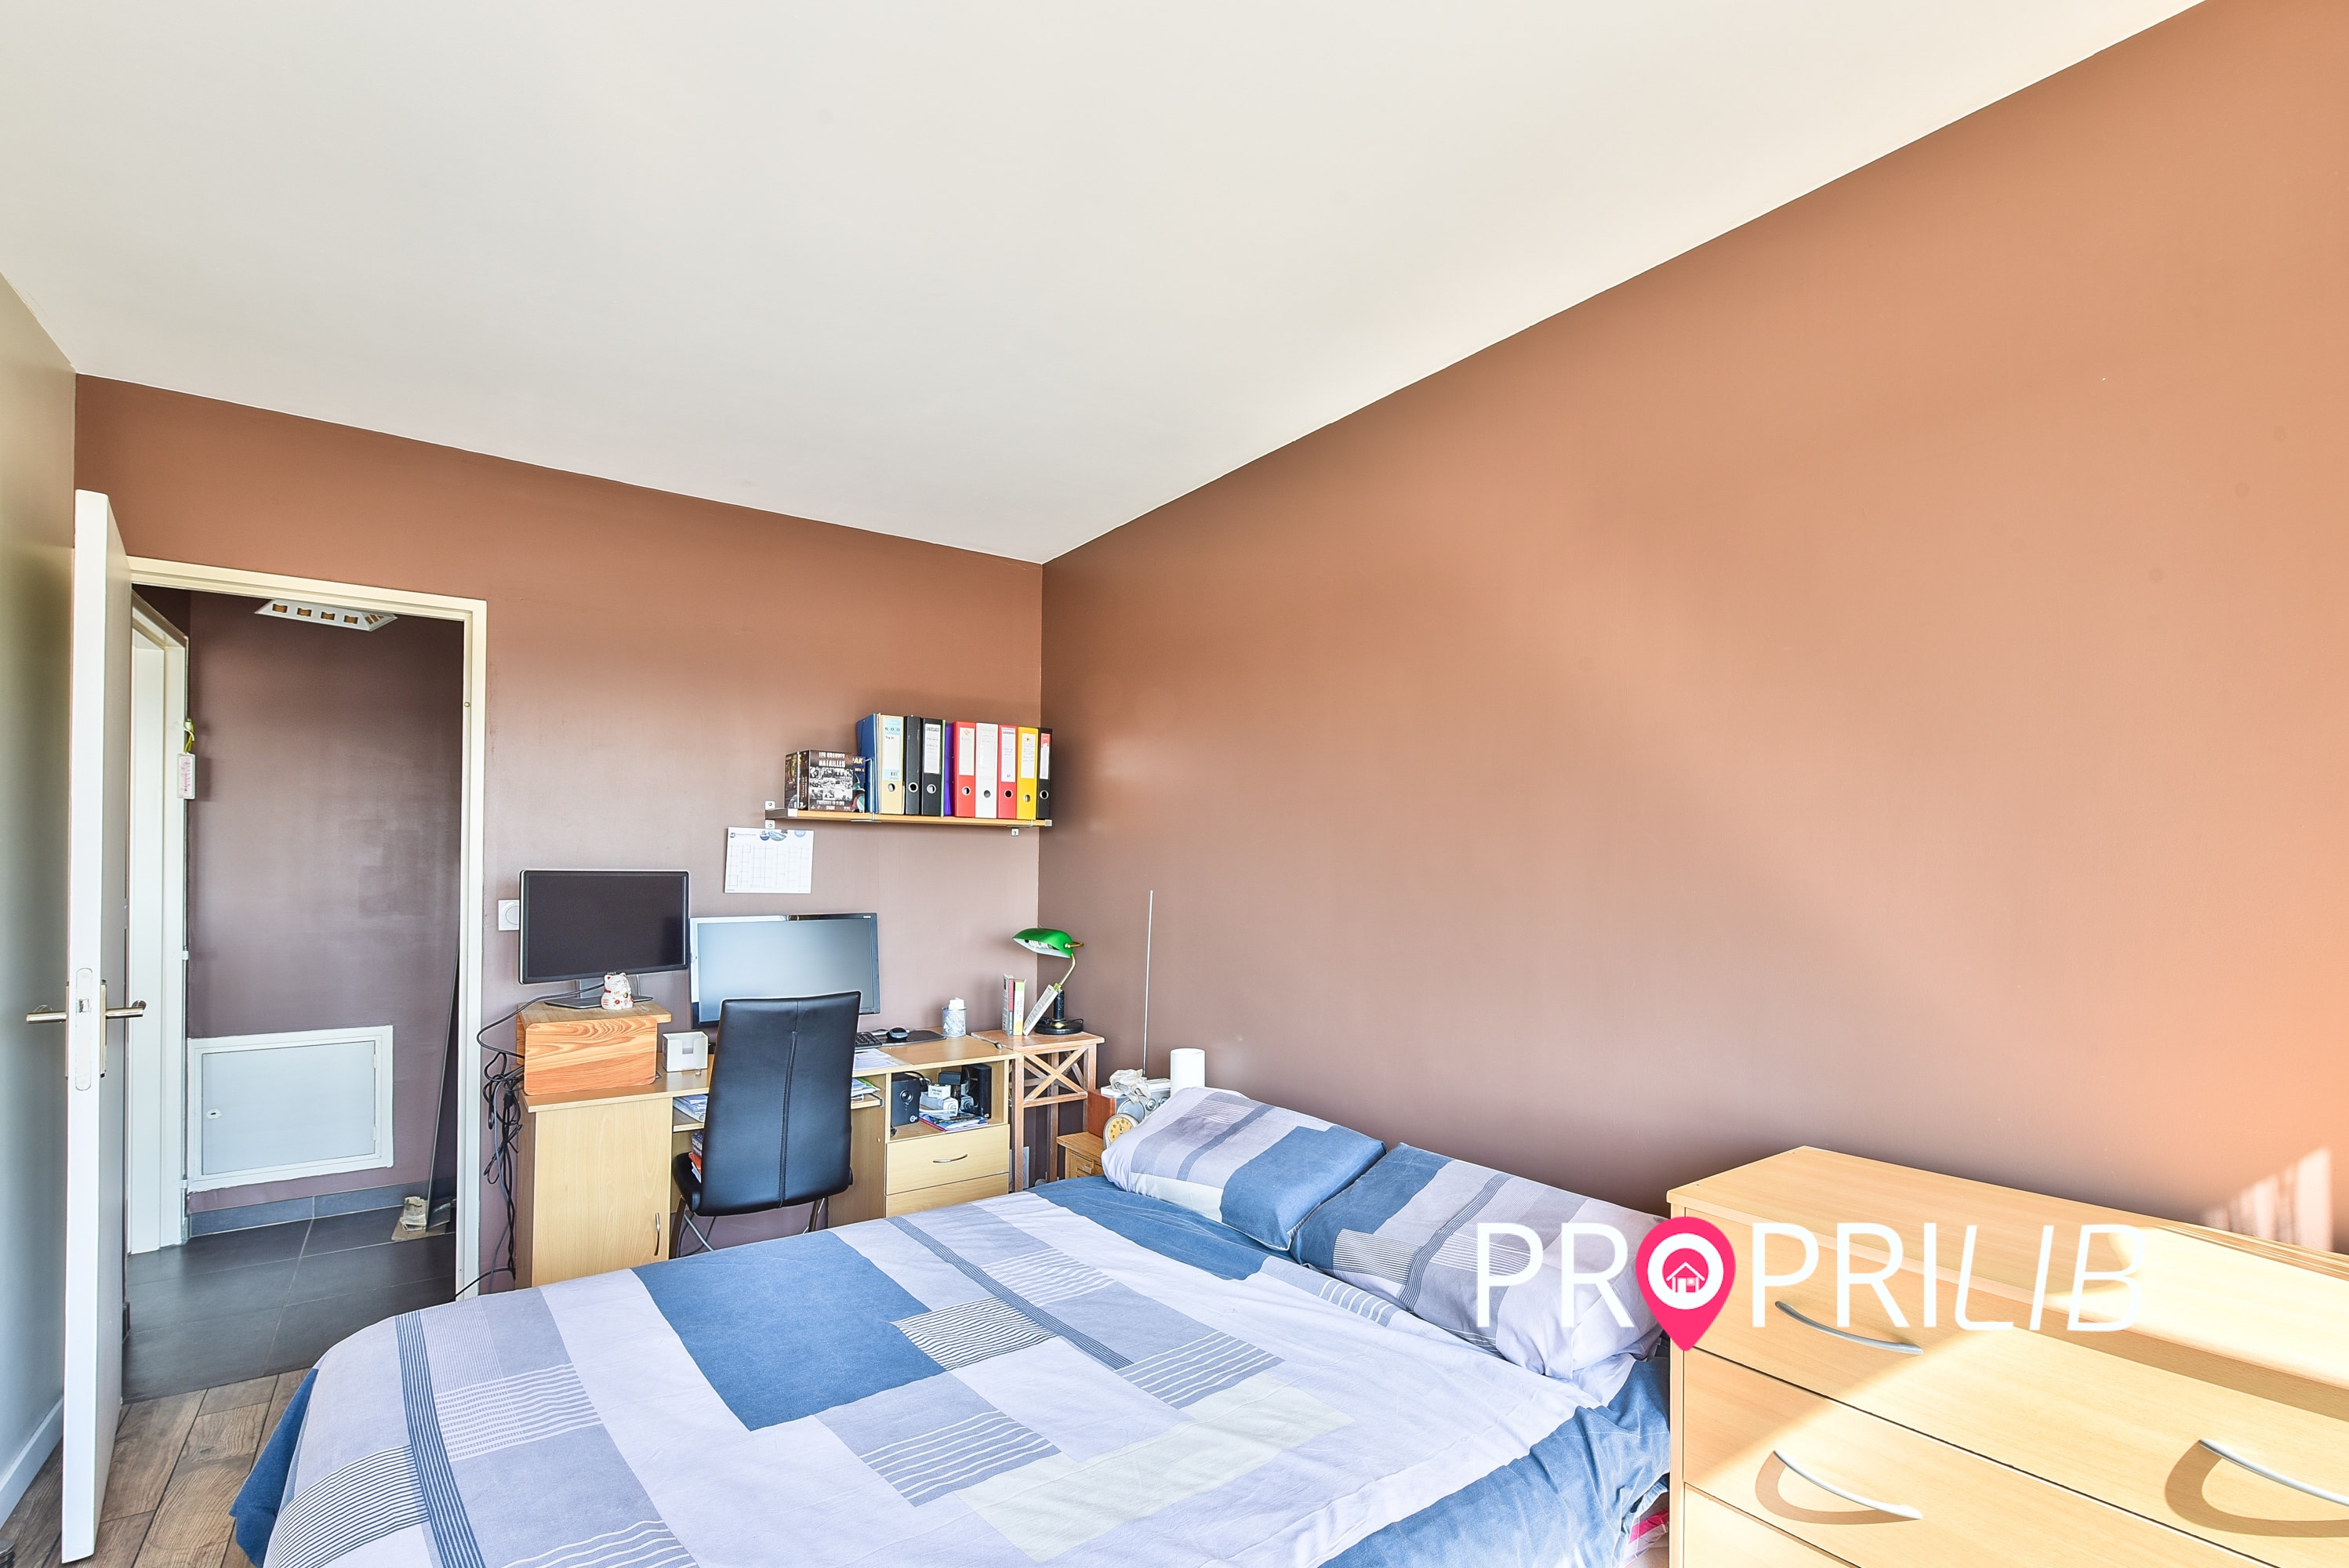 la-varenne-saint-hilaire-appartement